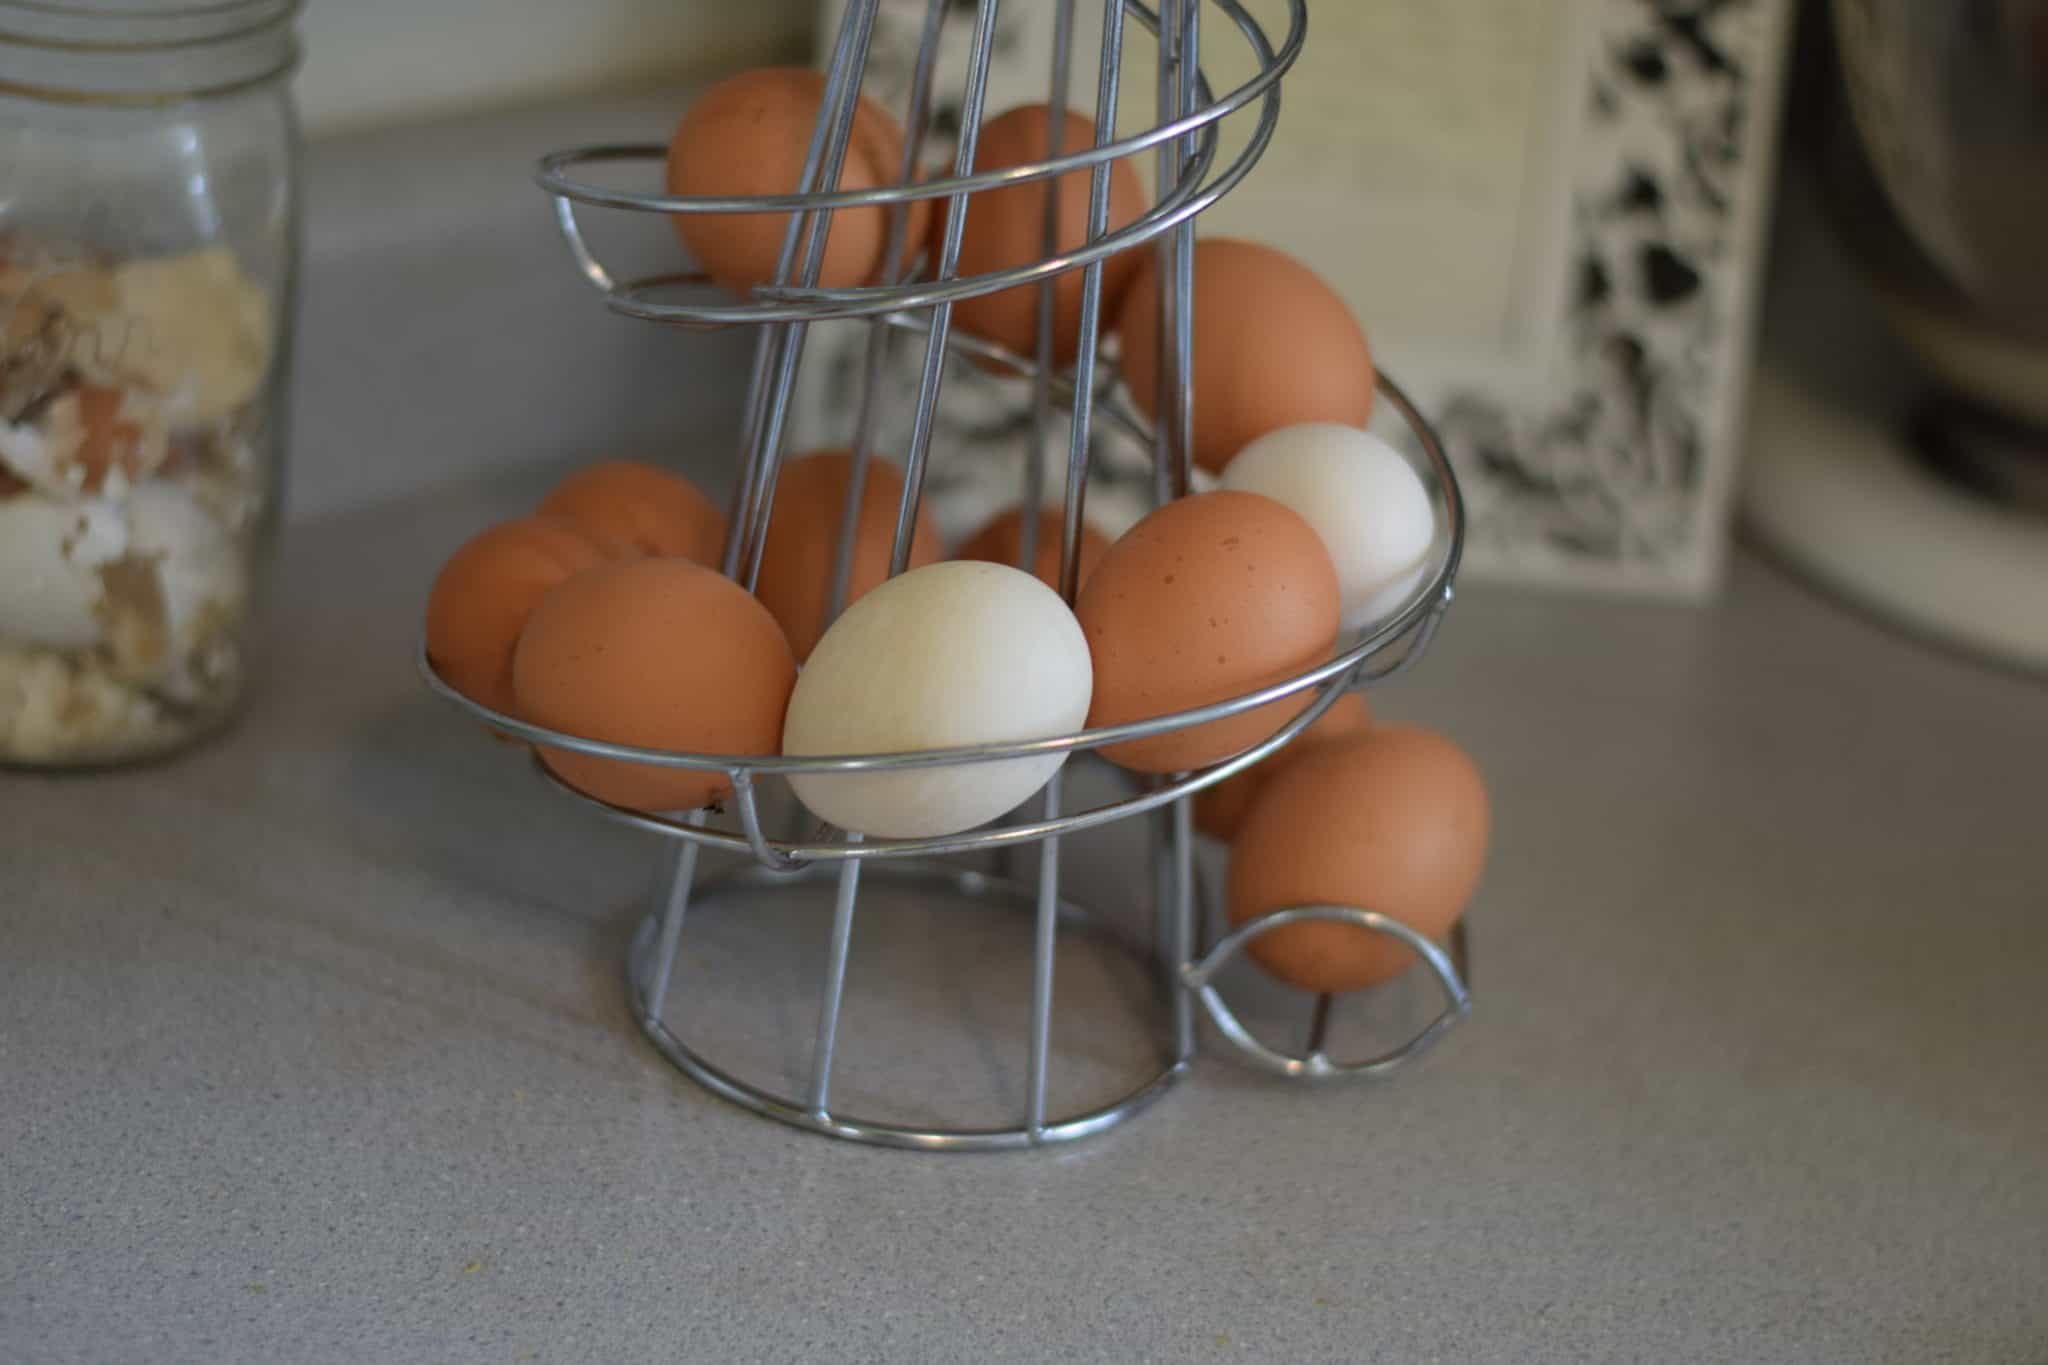 eggs stored in an egg skelter on a counter top